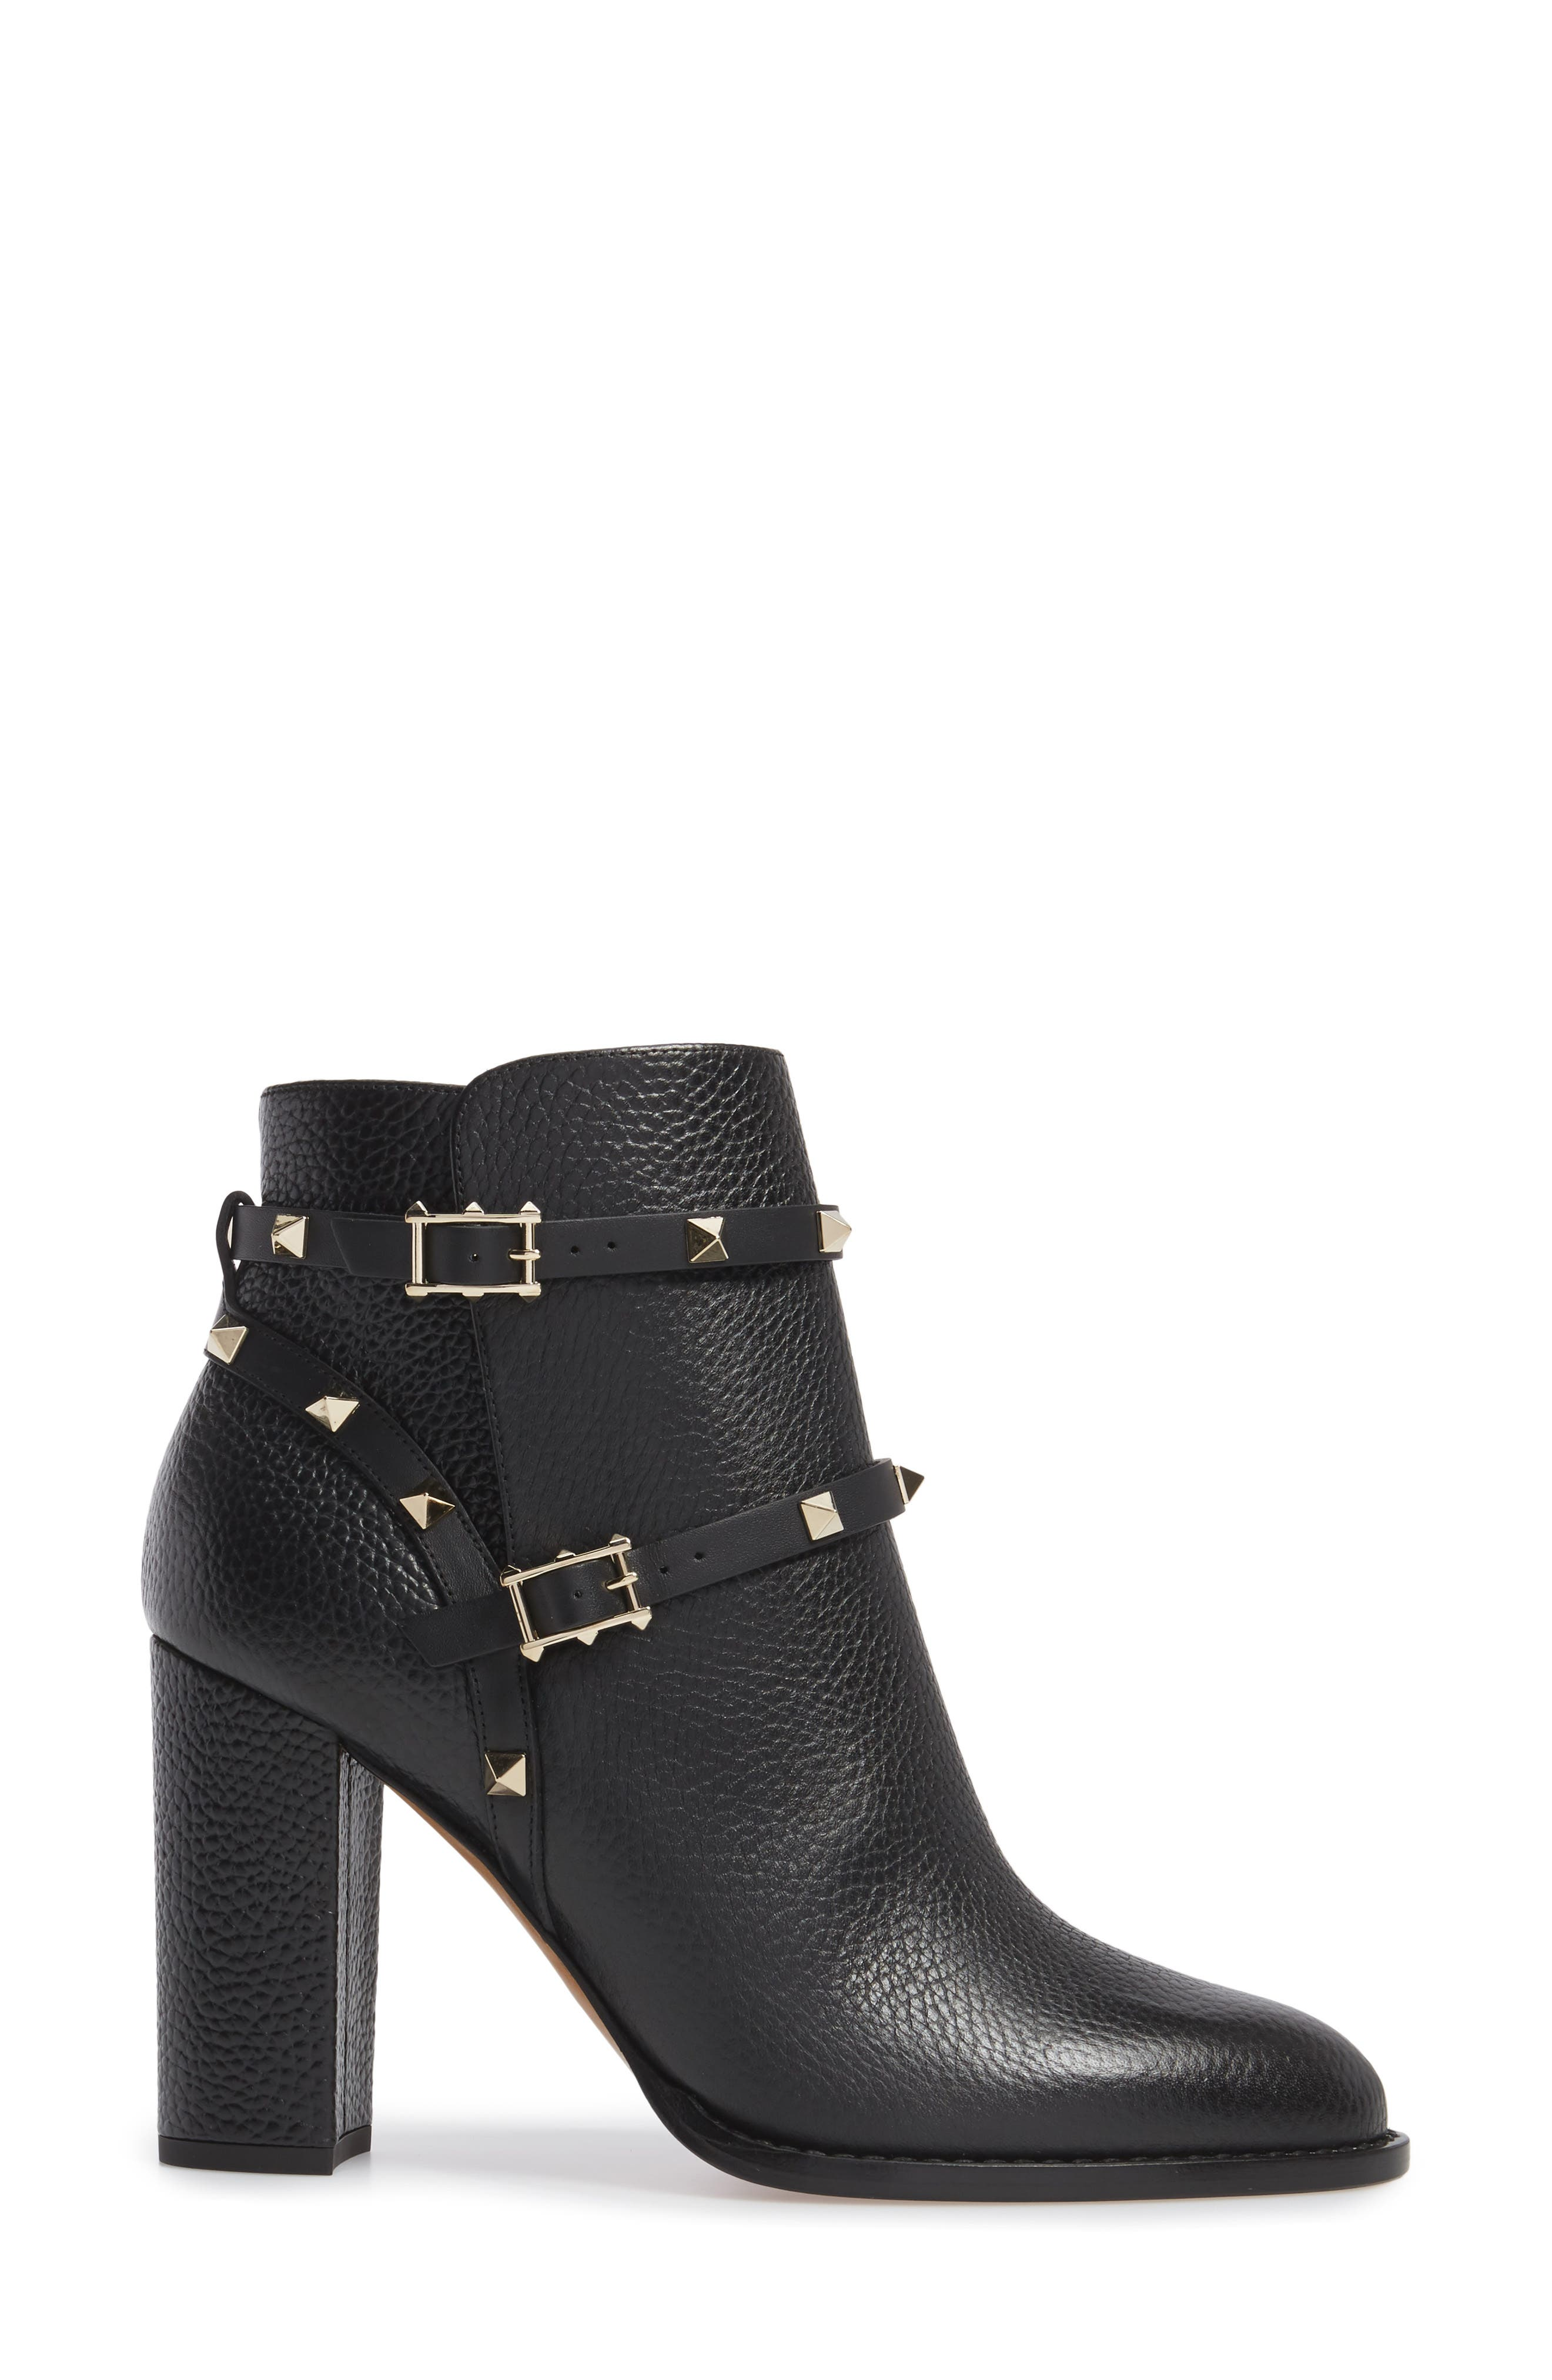 'Rockstud' Block Heel Bootie,                             Alternate thumbnail 3, color,                             BLACK